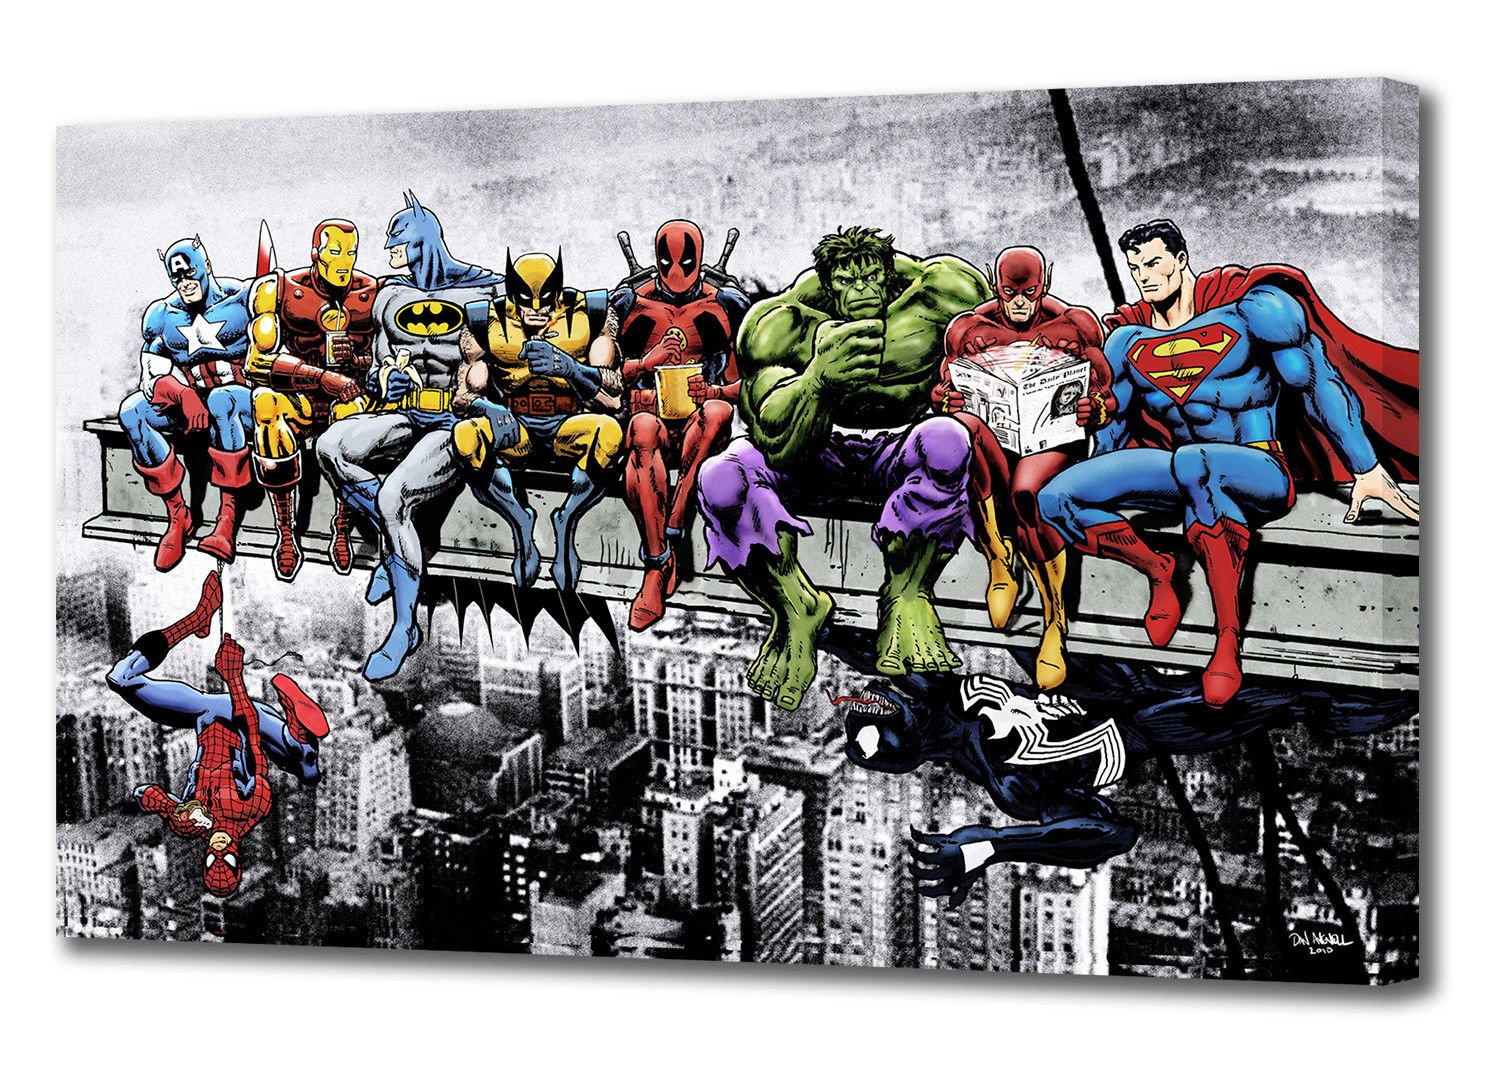 MARVEL DC COMIC SUPERHEROES GIRDER LUNCH ATOP SKYSCRAPER CANVAS ART (44'' x 26'')